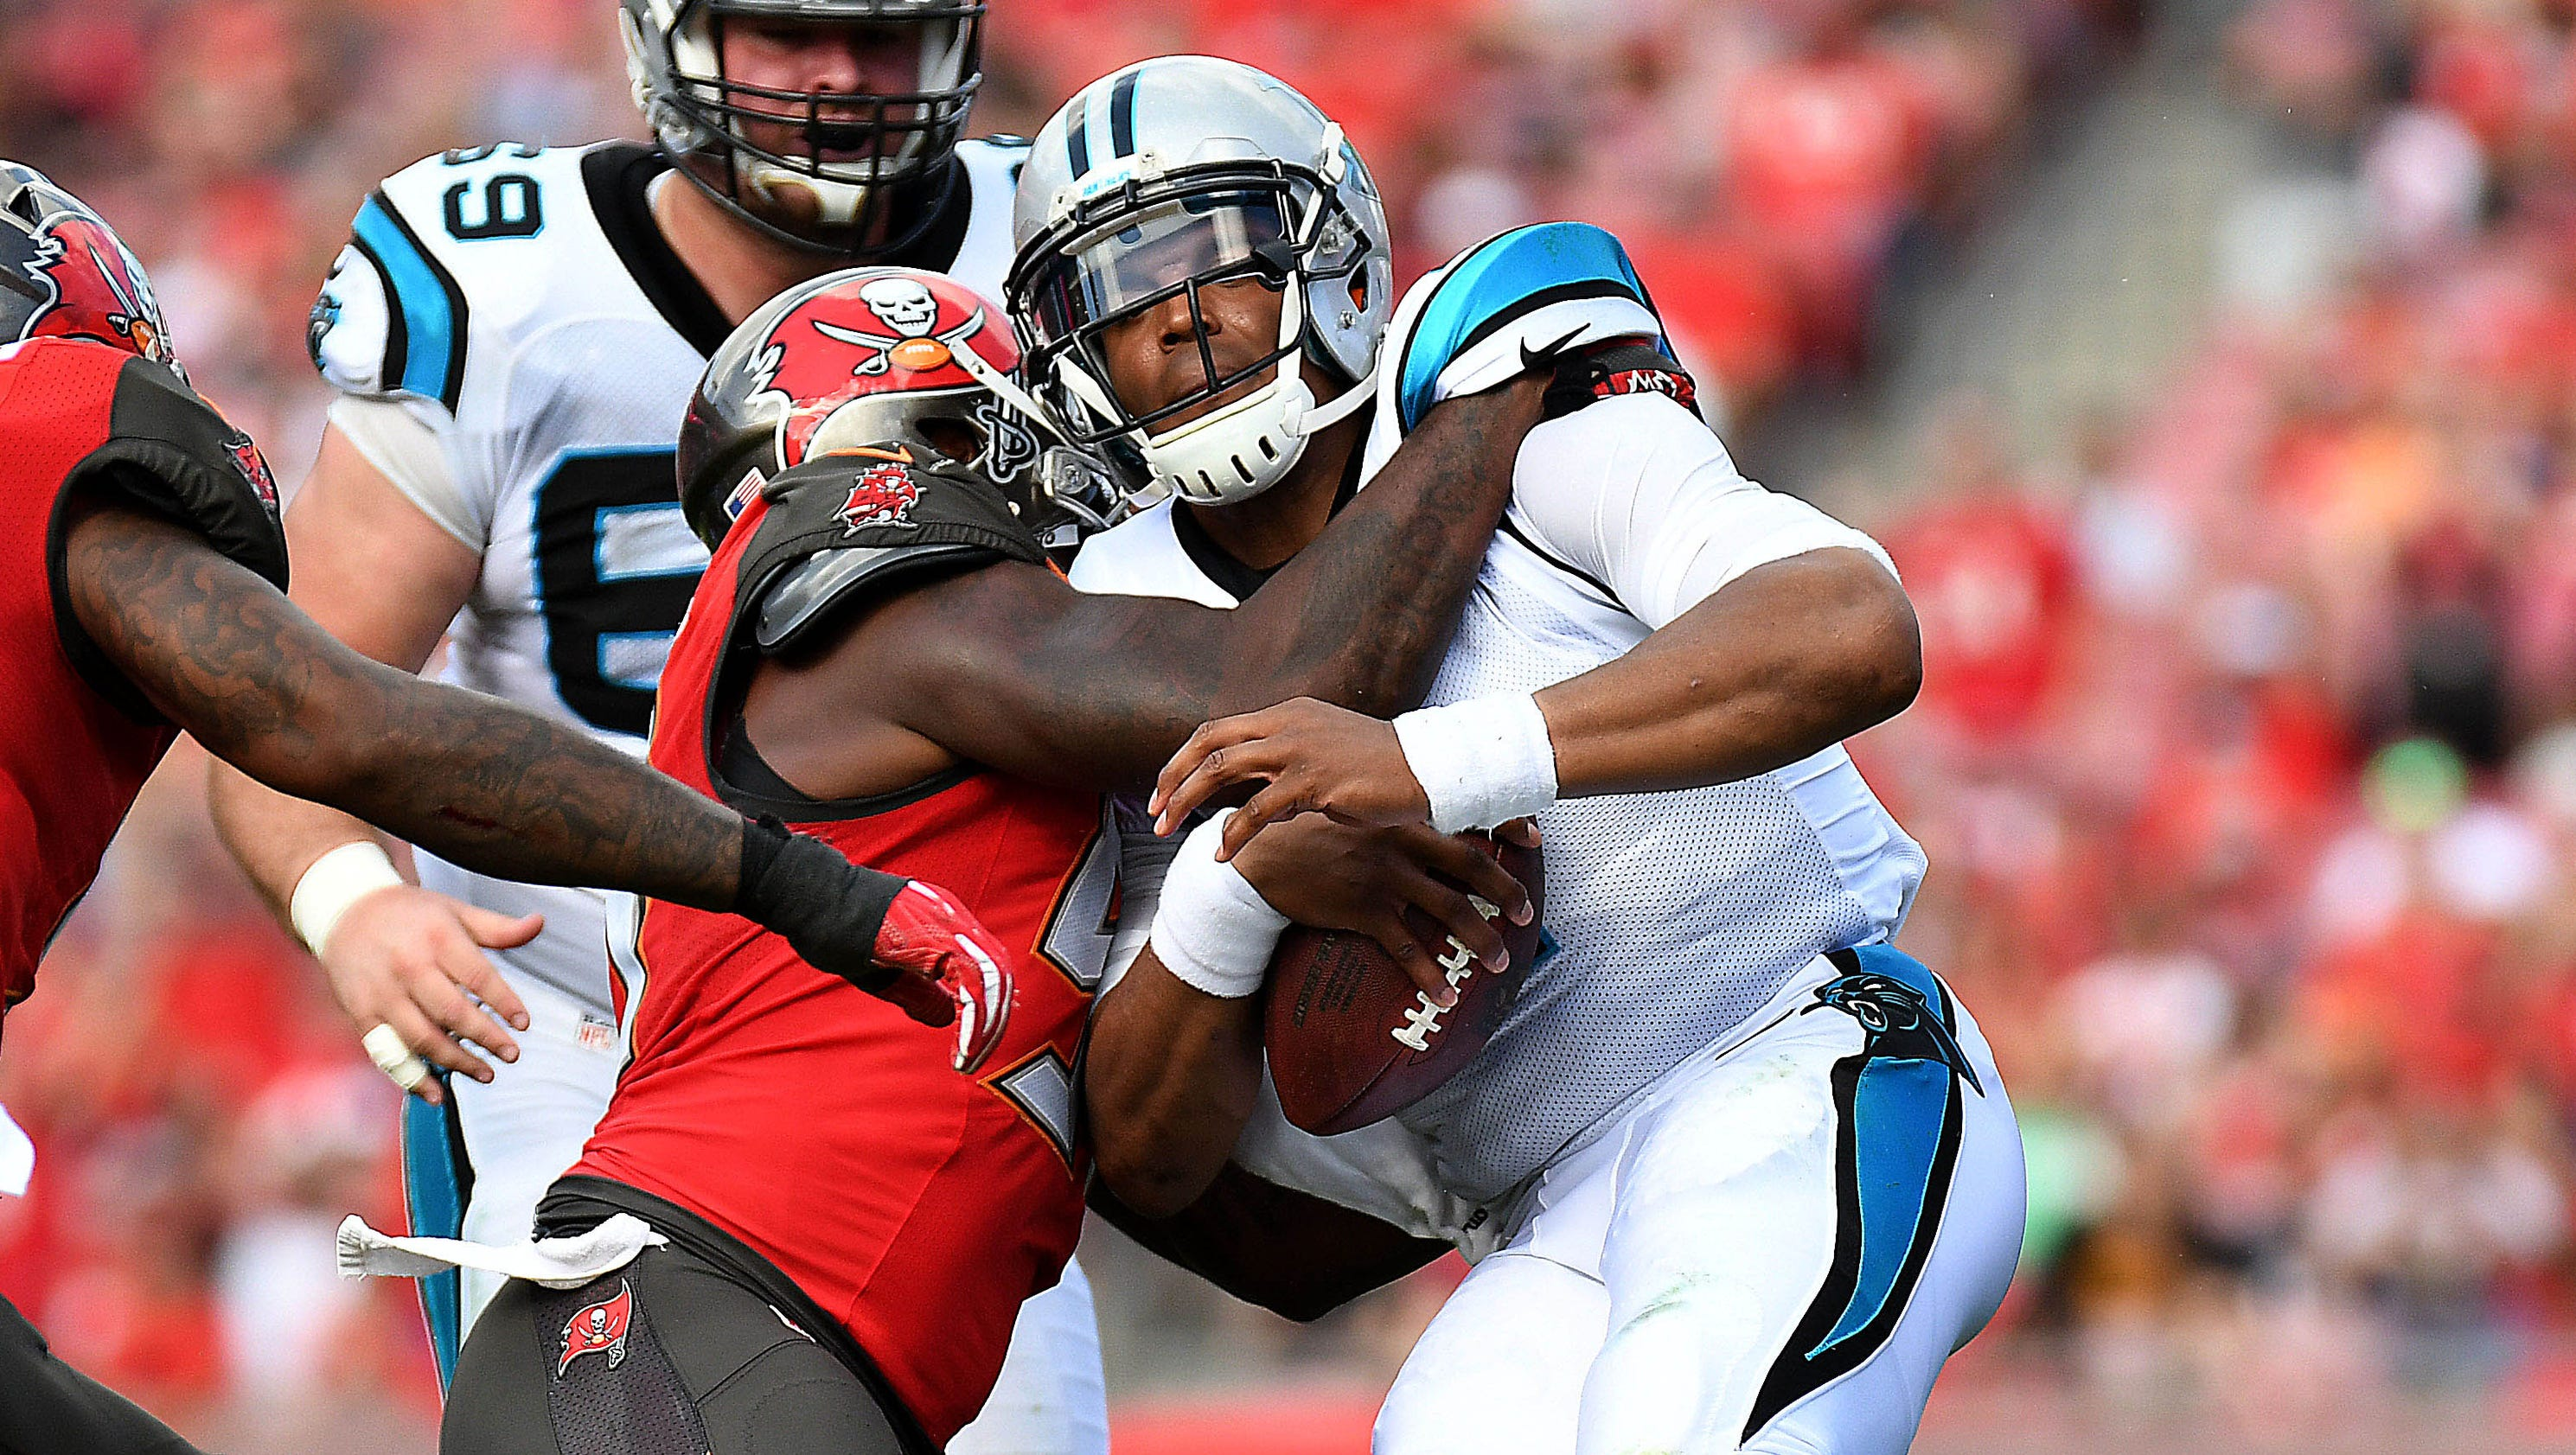 636259759837364585-usp-nfl-carolina-panthers-at-tampa-bay-buccaneers